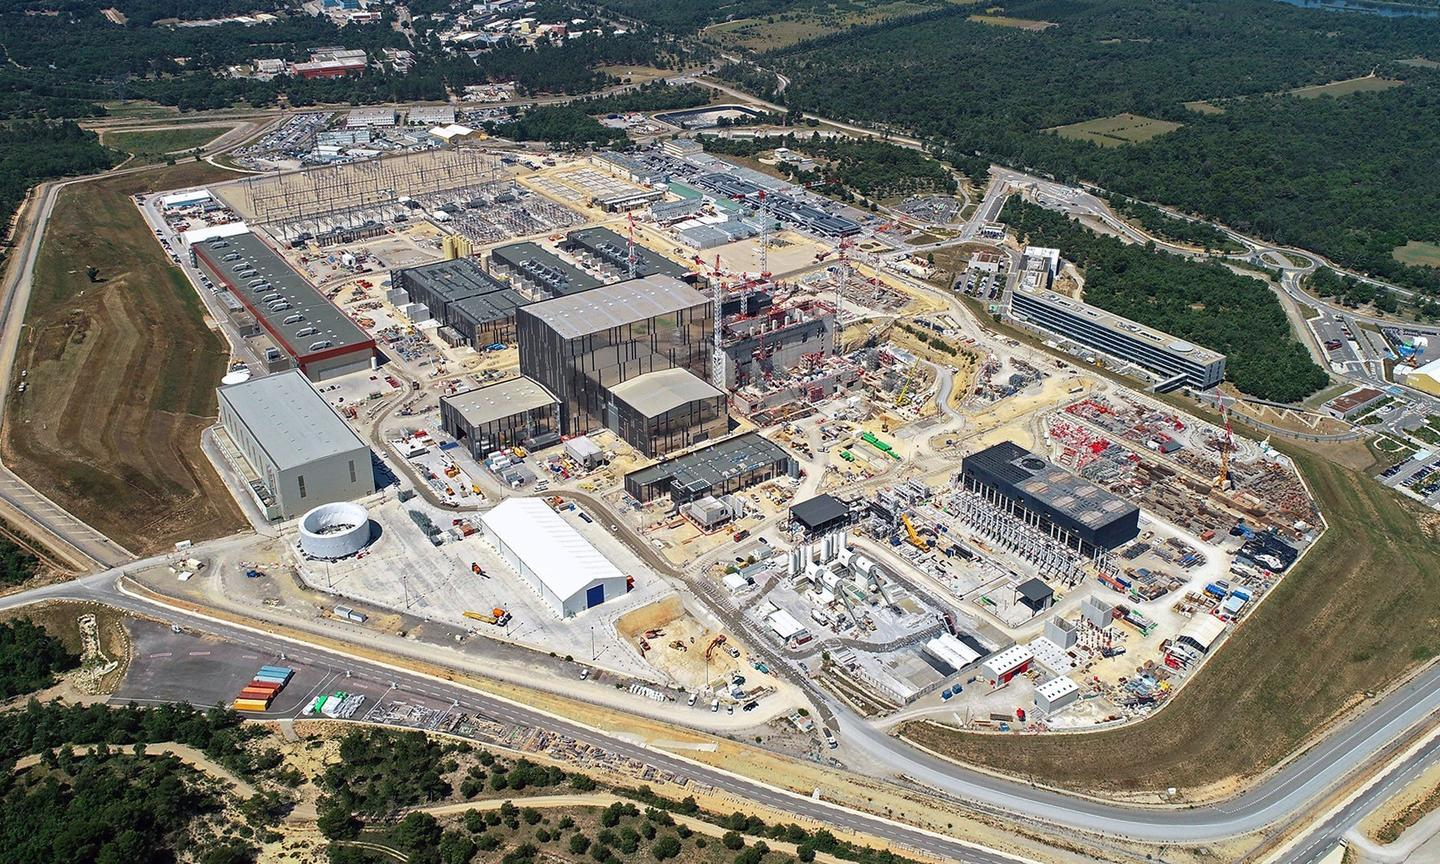 The site of ITER in France